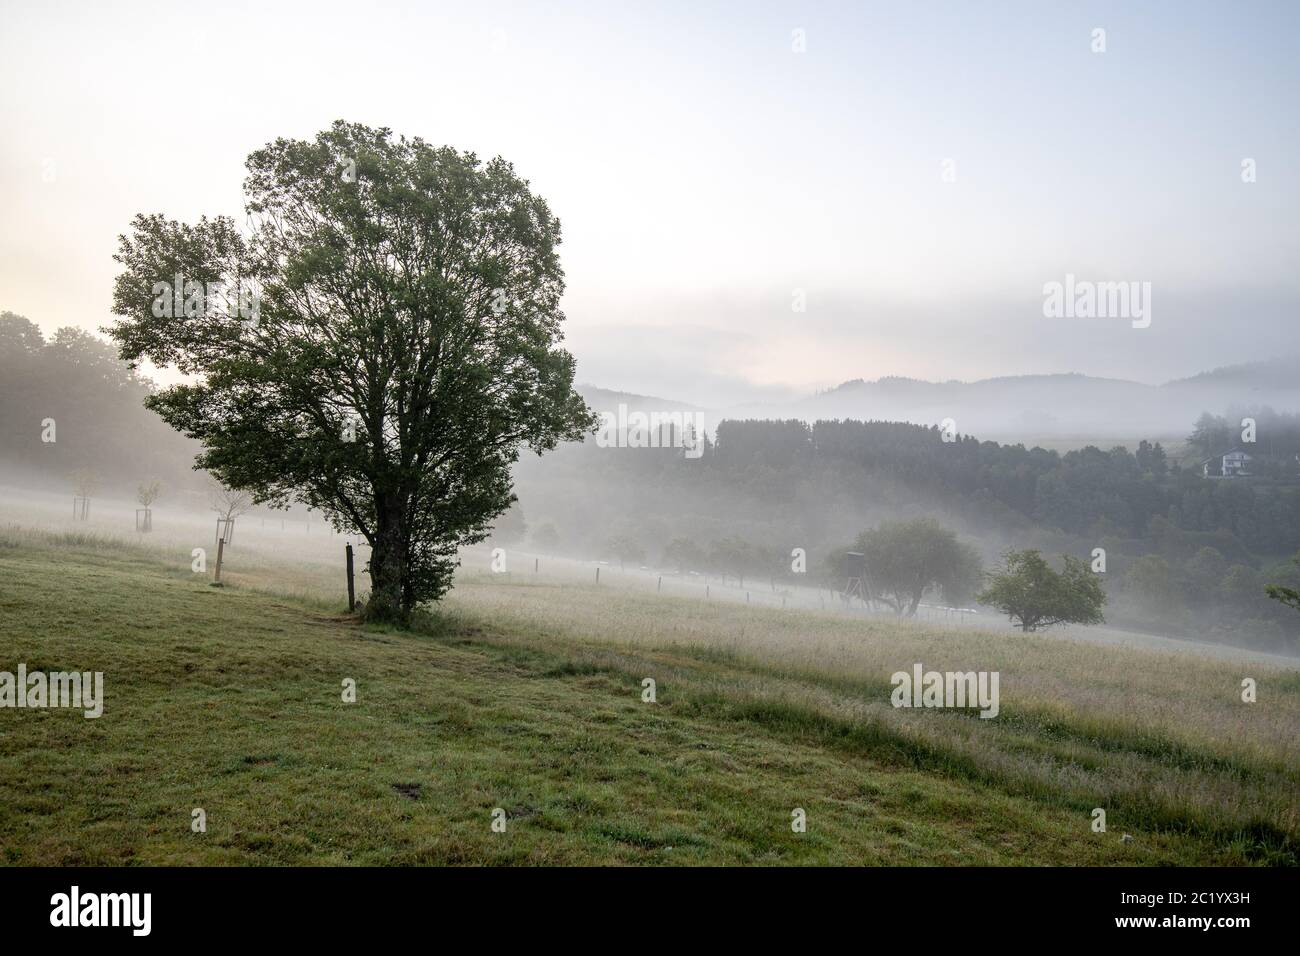 June 12th, 2020, Schwithten (Hessen): Fog lies in the early morning over the fields and the countryside near Dorfweil. | usage worldwide Stock Photo